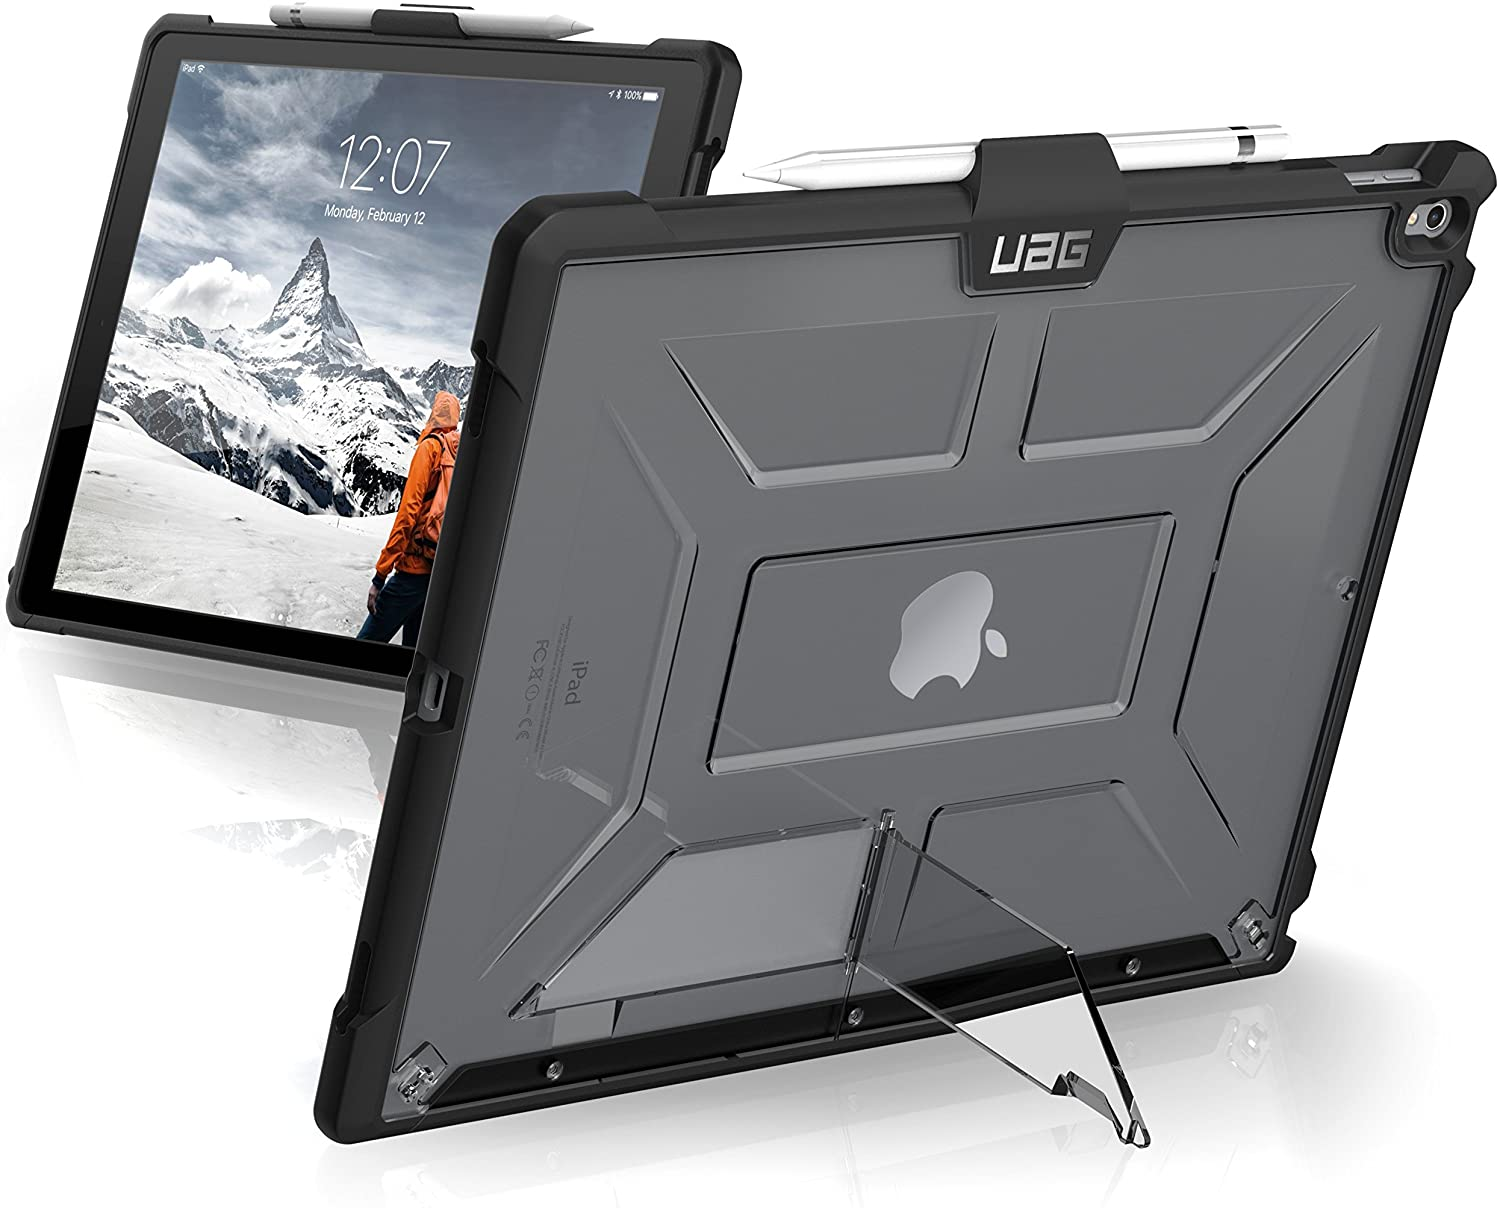 Urban Armor Gear UAG iPad Pro 12.9-inch (2nd Gen, 2017) & iPad Pro 12.9-inch (1st Gen, 2015) Plasma Feather-Light Rugged [Ice] Military Drop Tested iPad Case